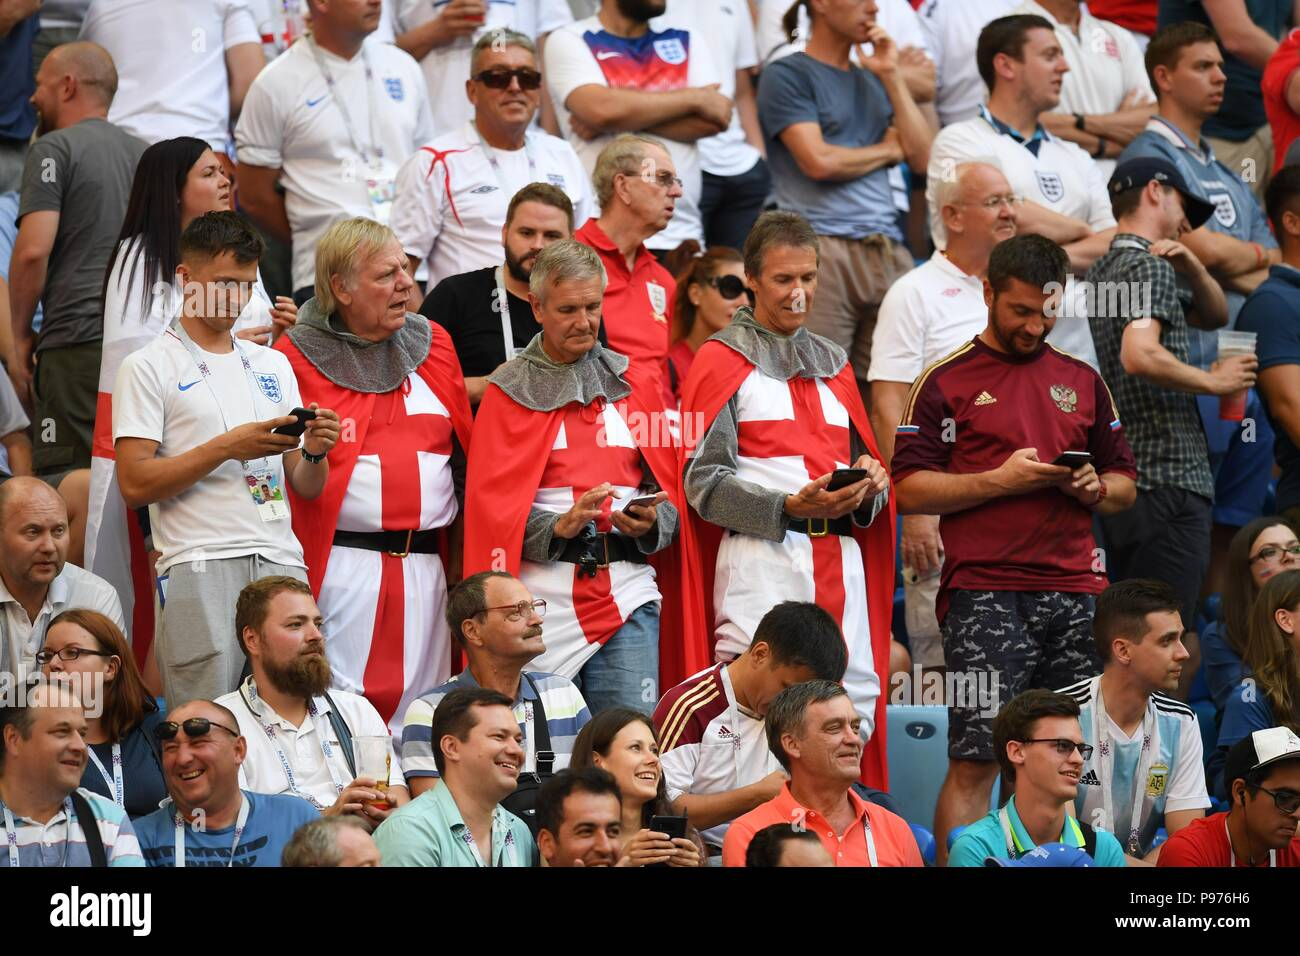 July 14th, 2018, St Petersburg, Russia. Football fans during 2018 FIFA World Cup Russia match between England and Belgium at Saint-Petersburg Stadium, Russia. Shoja Lak/Alamy Live News - Stock Image